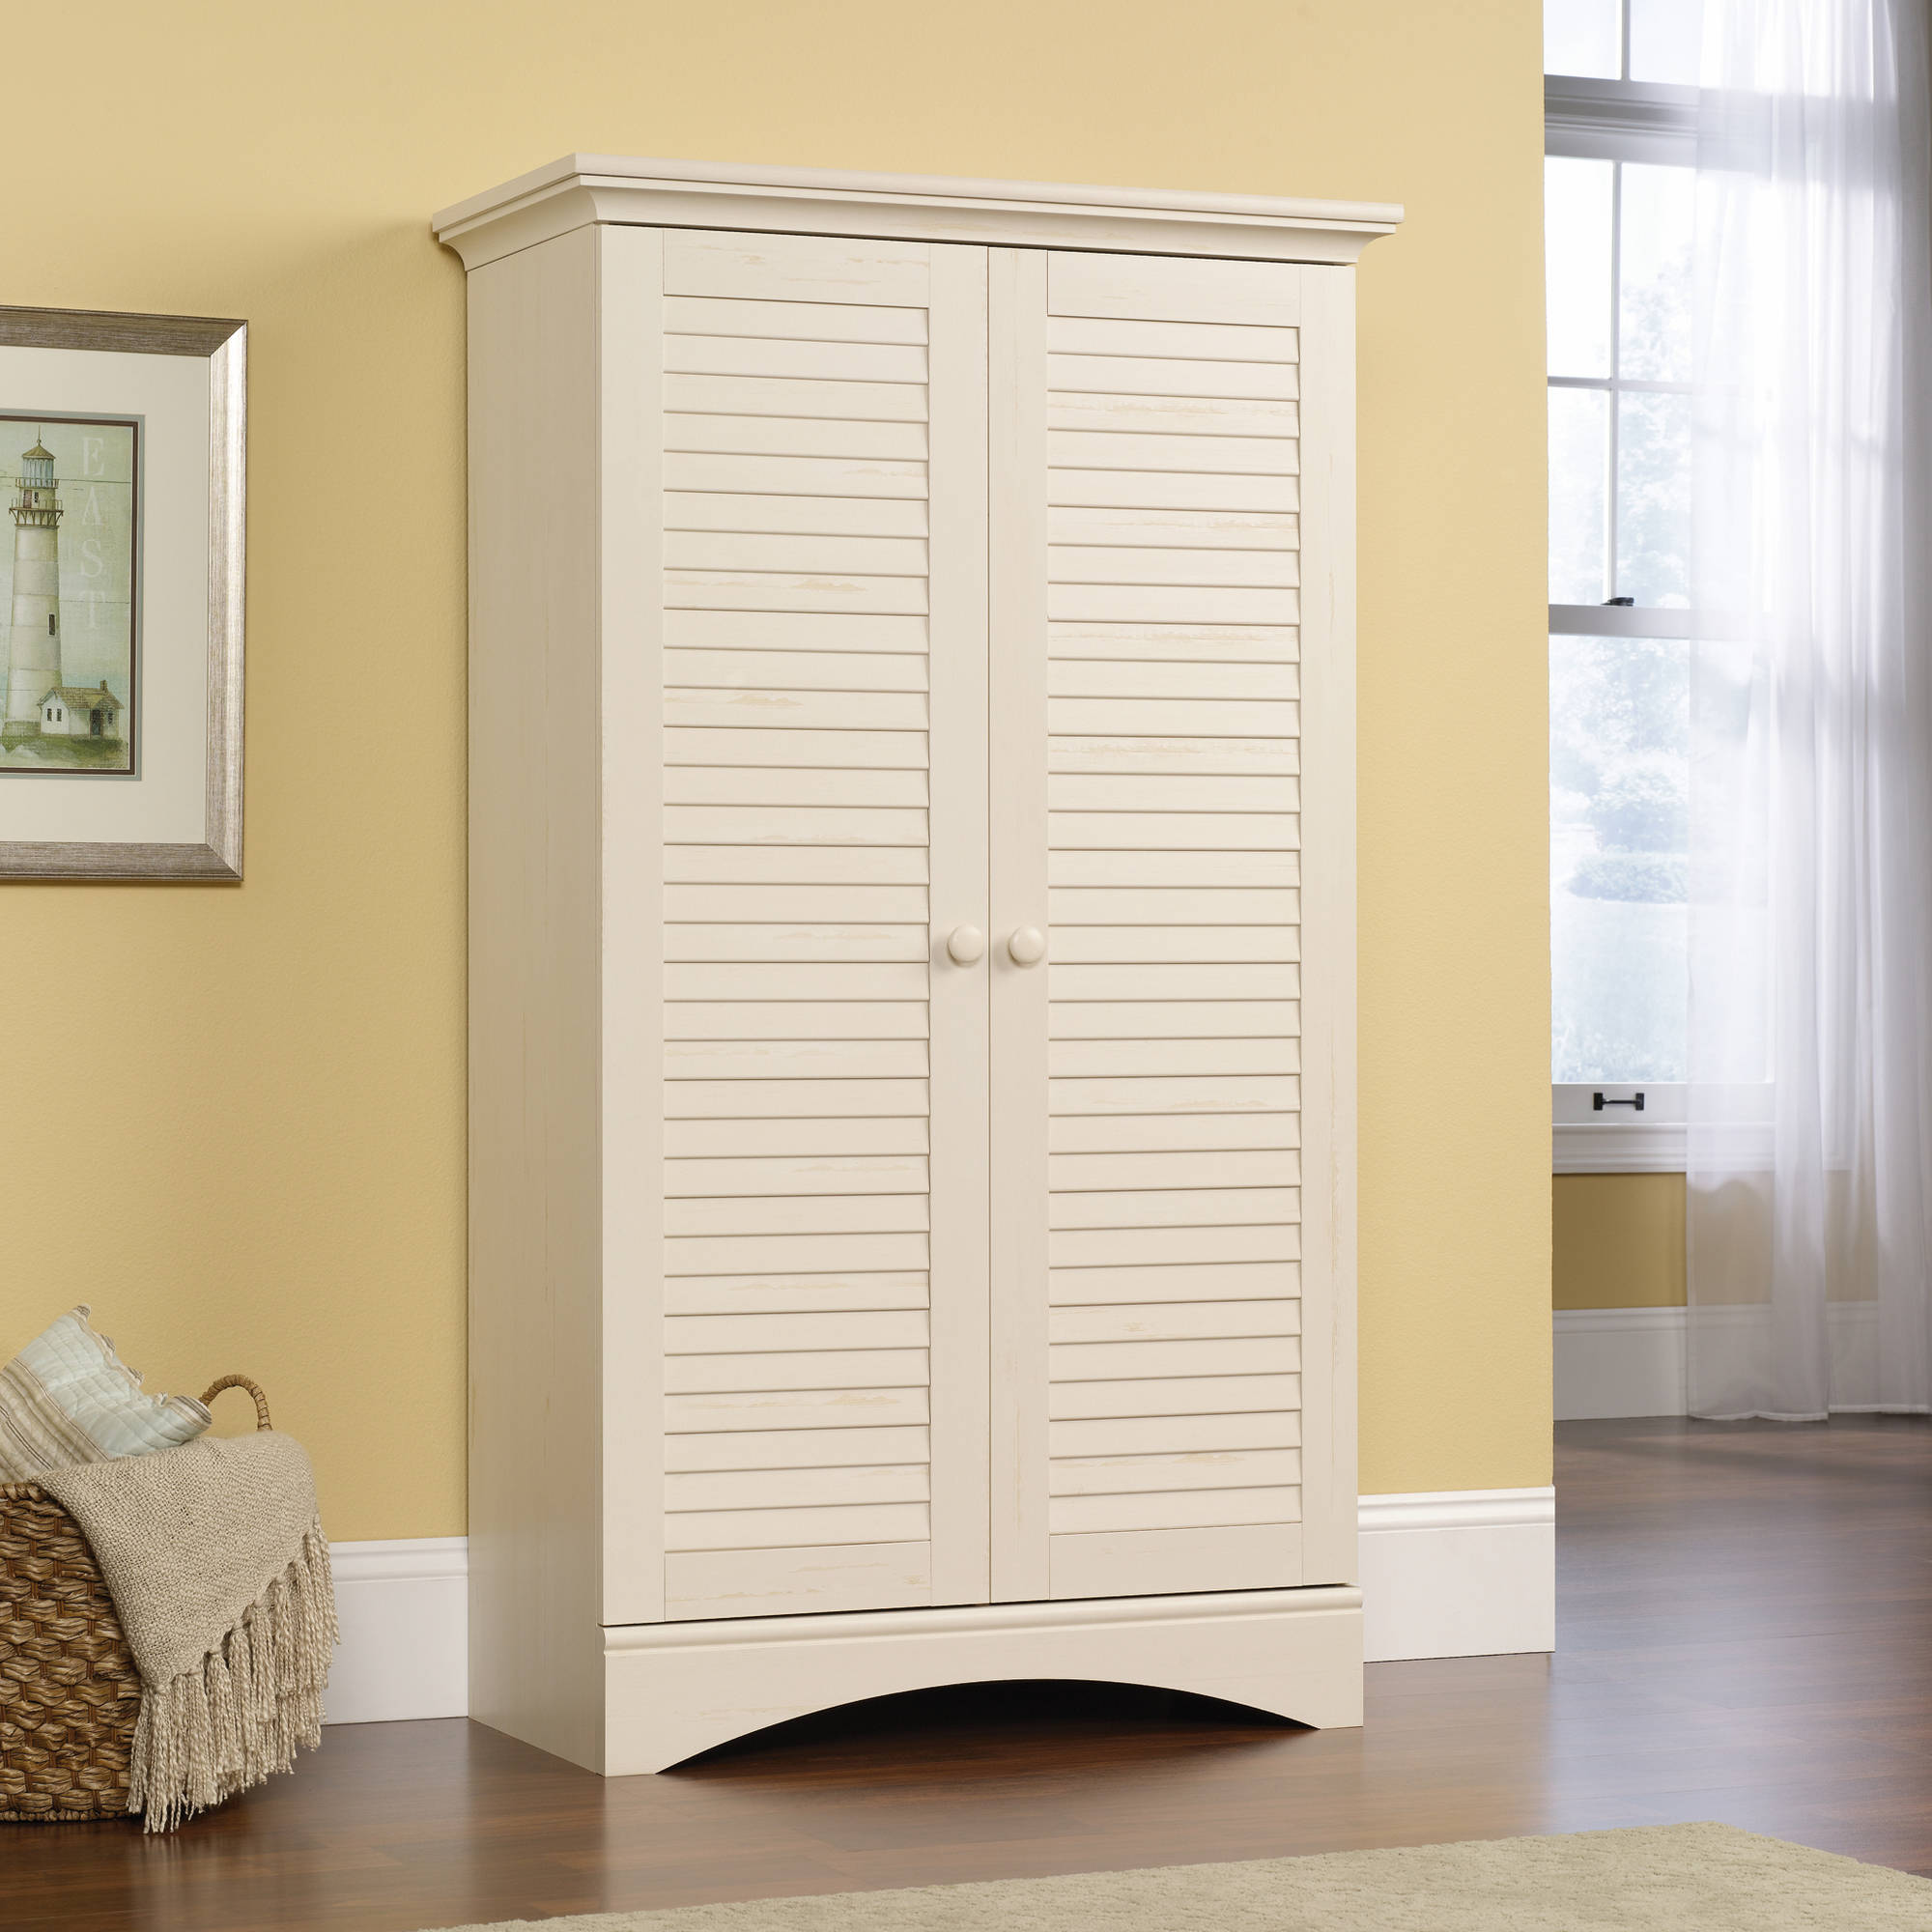 Sauder Harbor View Storage Cabinet Multiple Colors Walmart